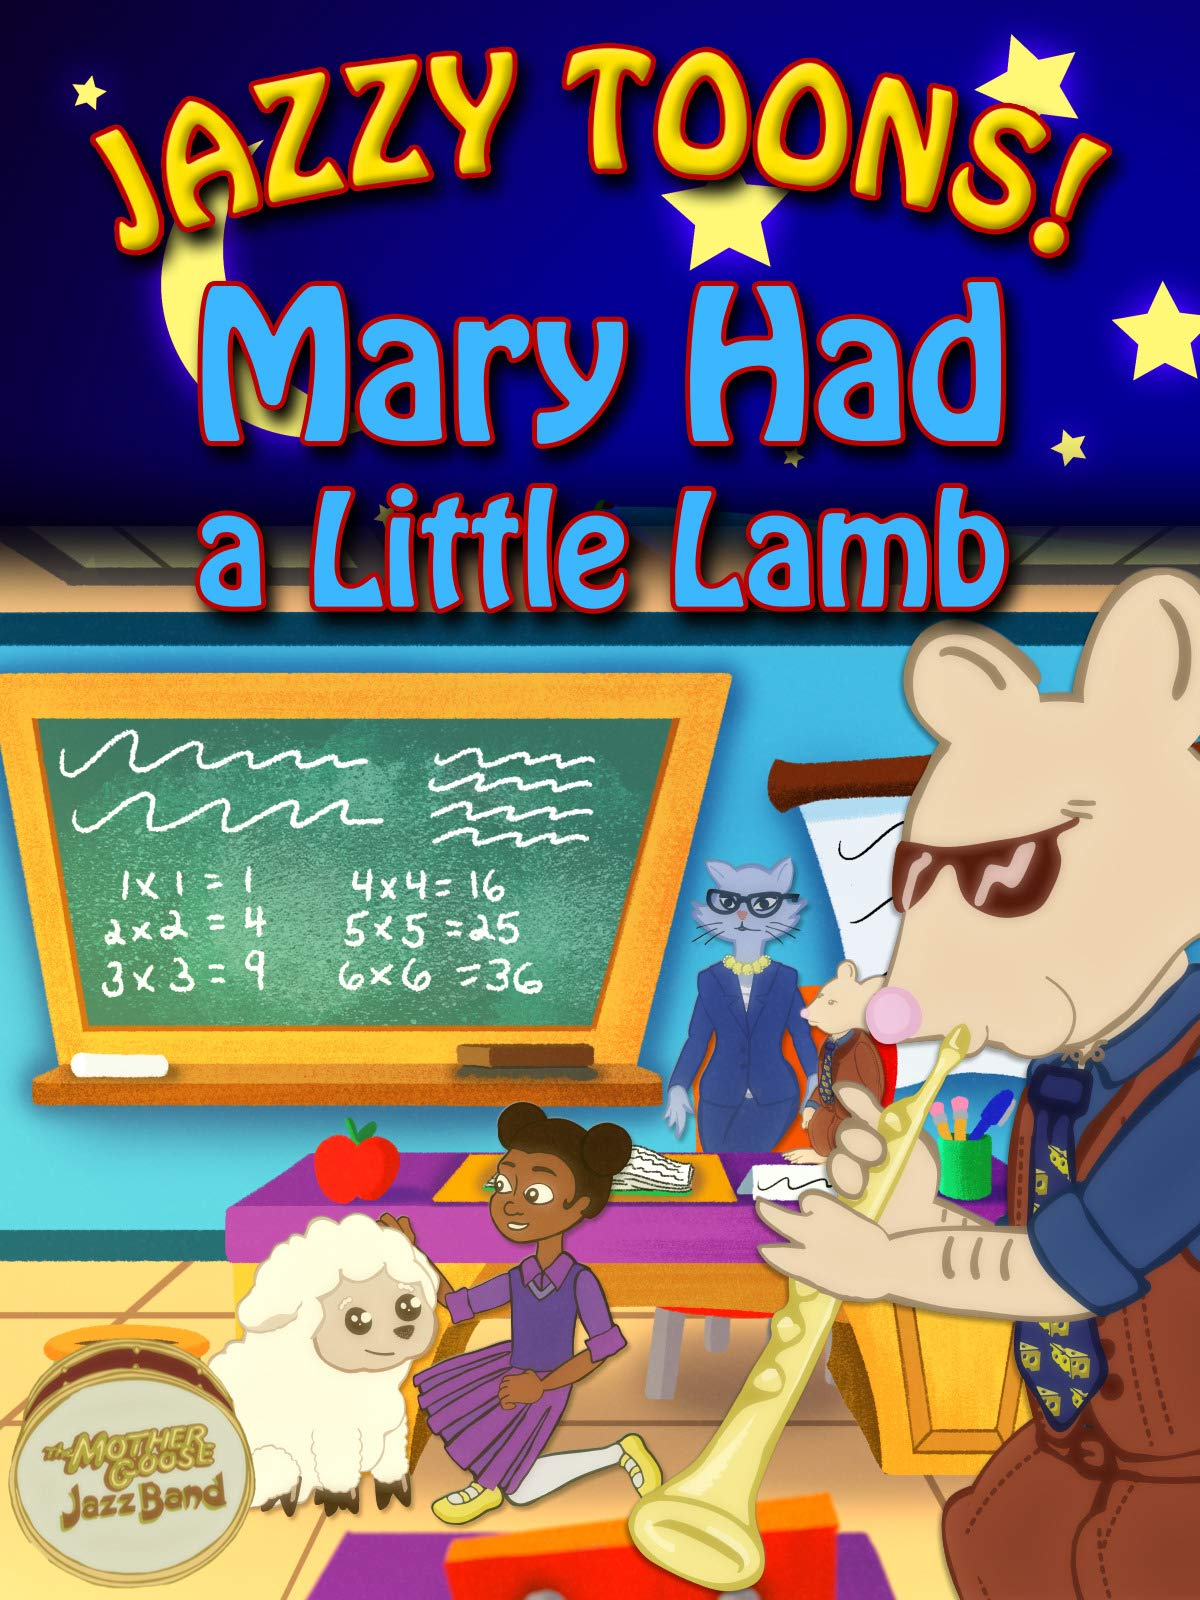 Mary Had A Little Lamb - Jazzy Toons - Kids Songs and Nursery Rhymes